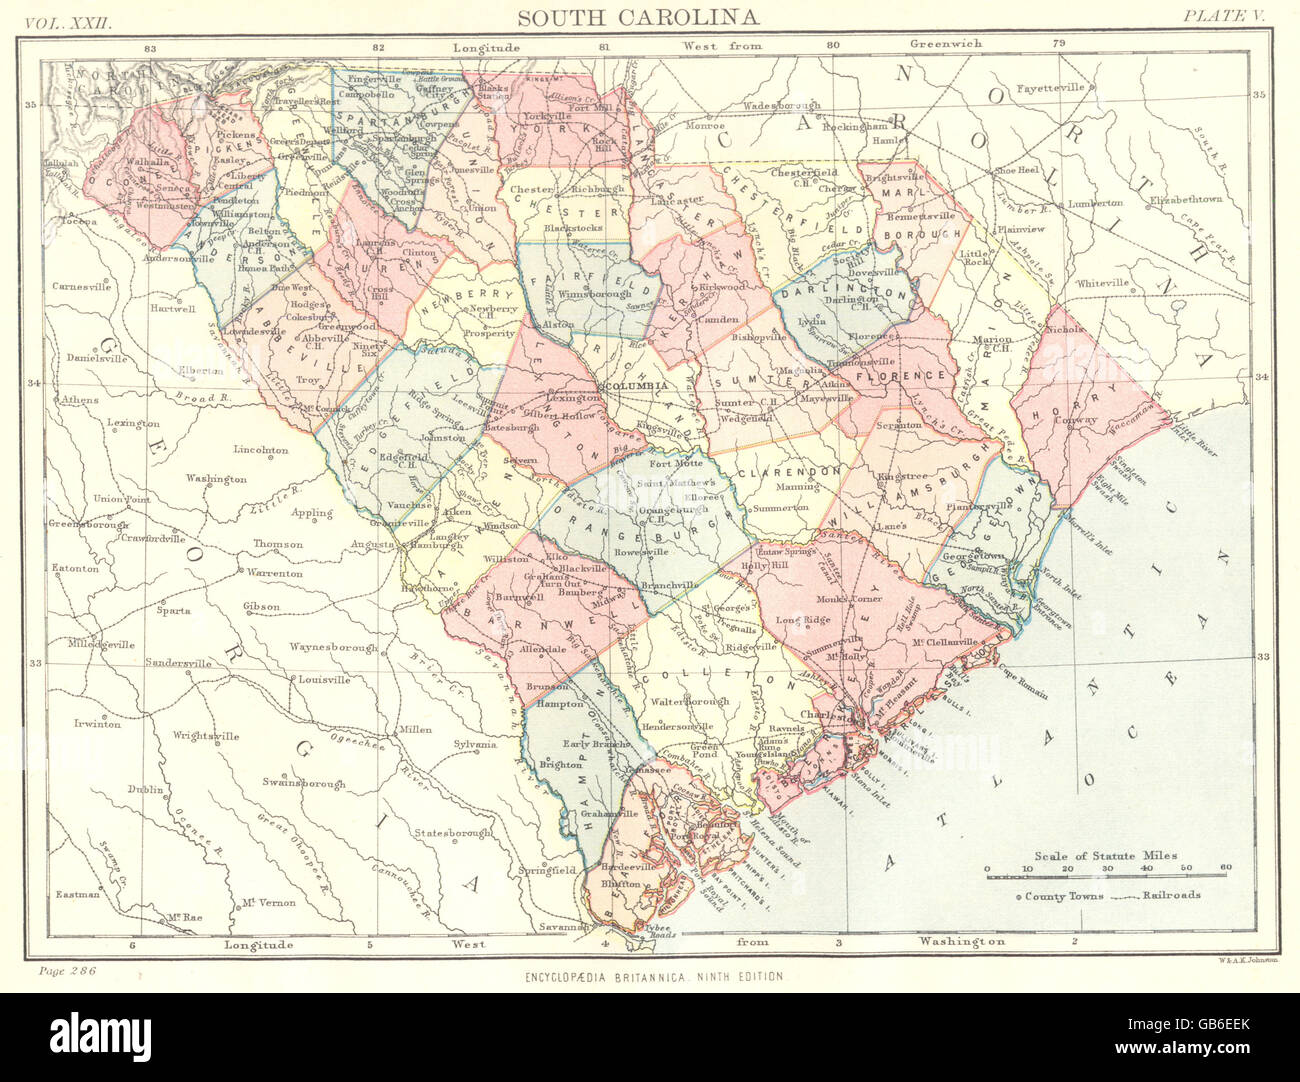 SOUTH CAROLINA: State map showing counties. Britannica 9th ...